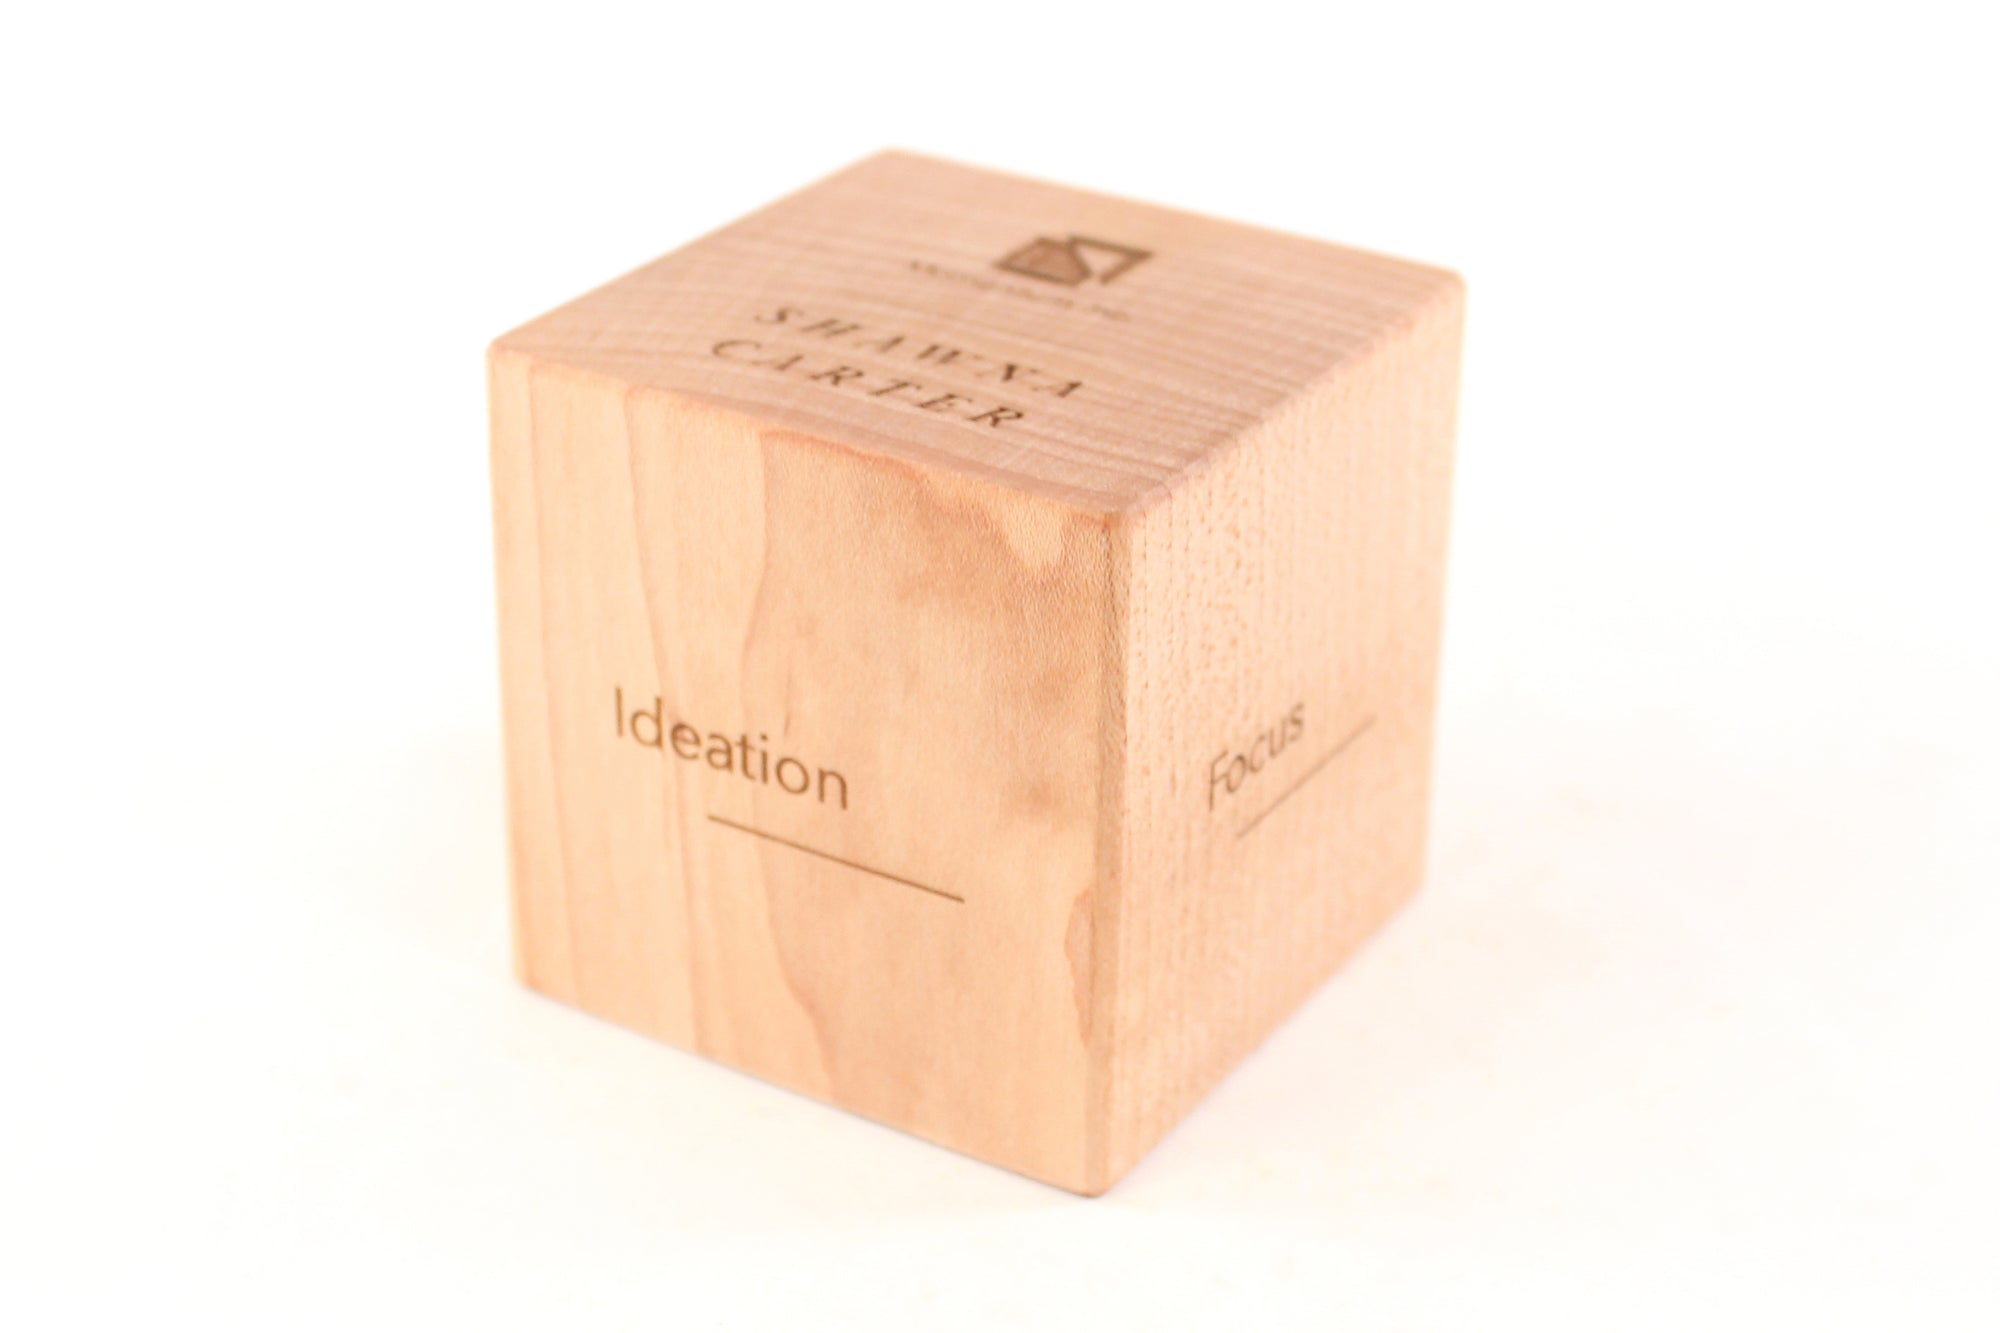 Clifton Strengths Test personality block corporate gift for new hires Smiling Tree Gifts